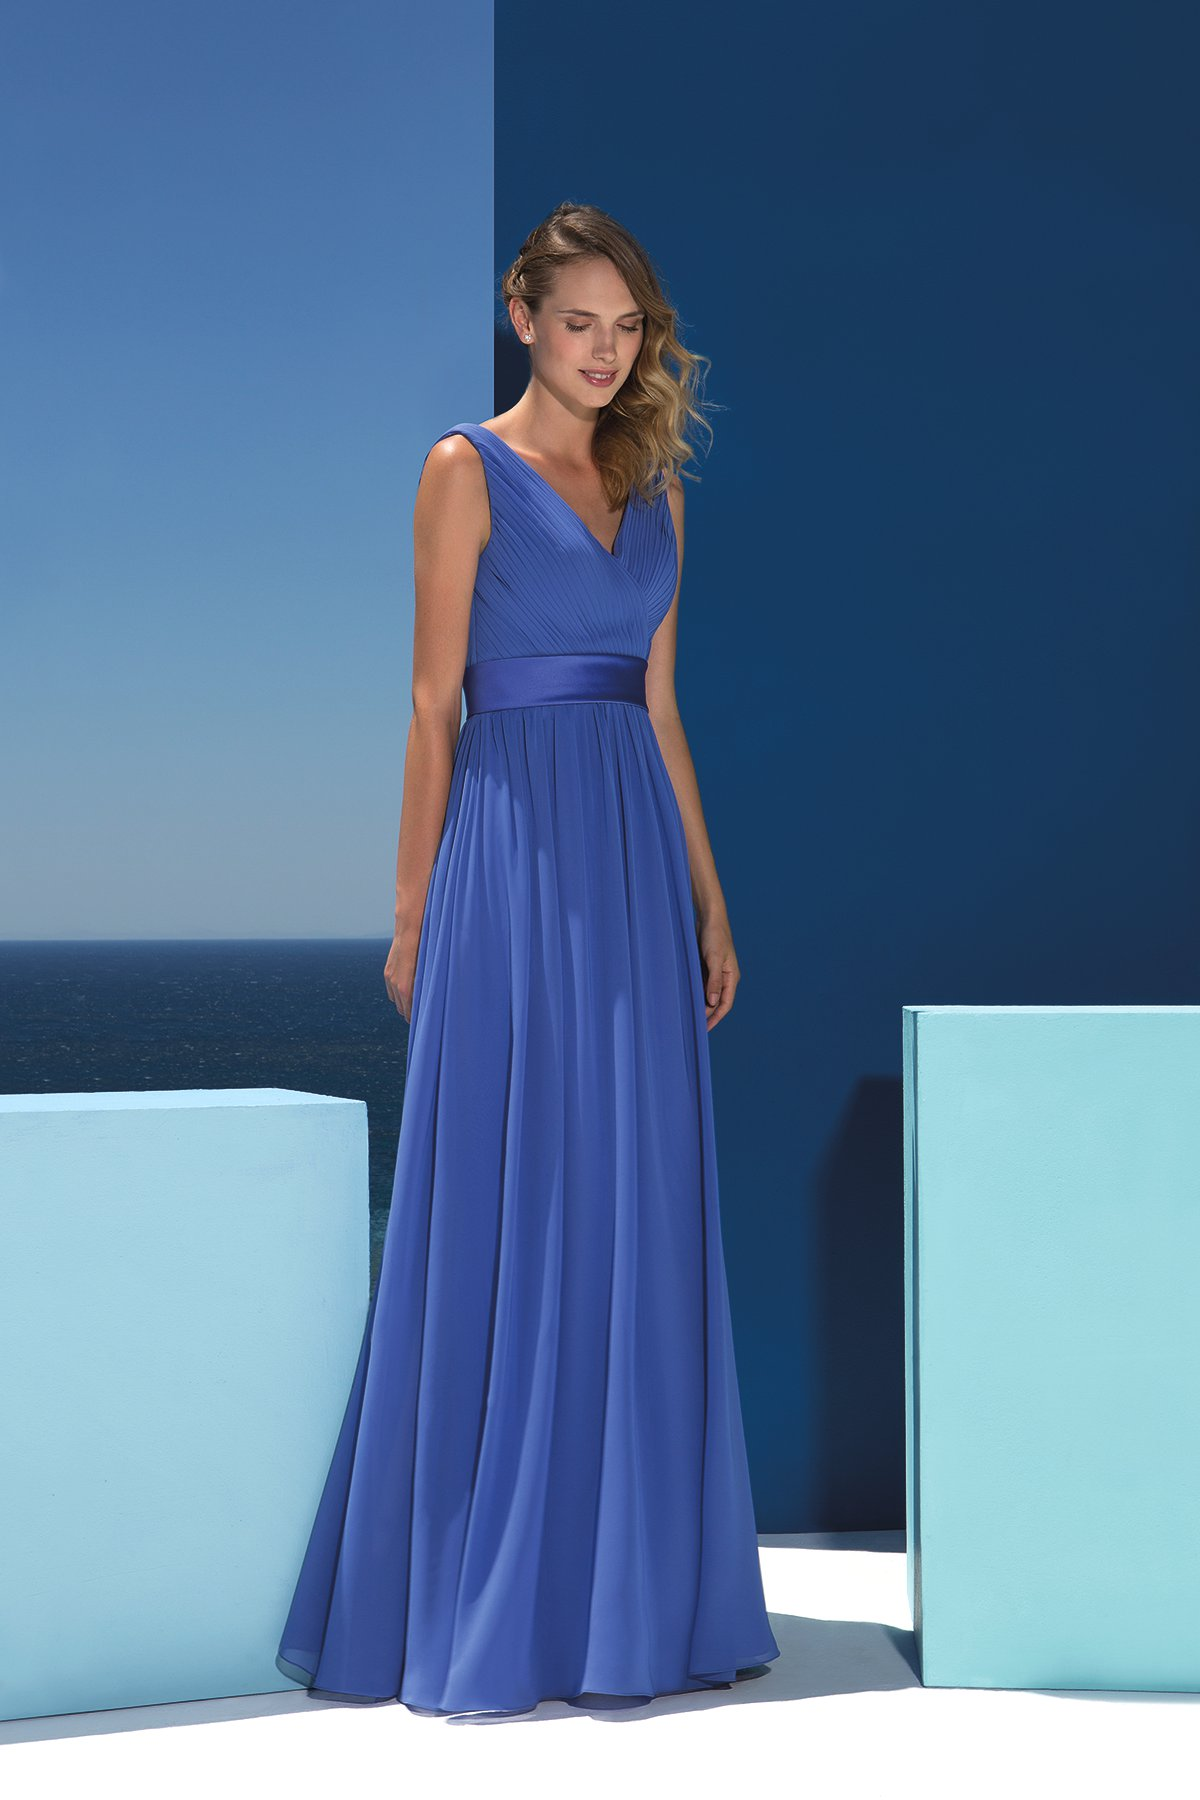 Spoil your girls with Mark Lesley bridesmaid gowns! - Love Our Wedding